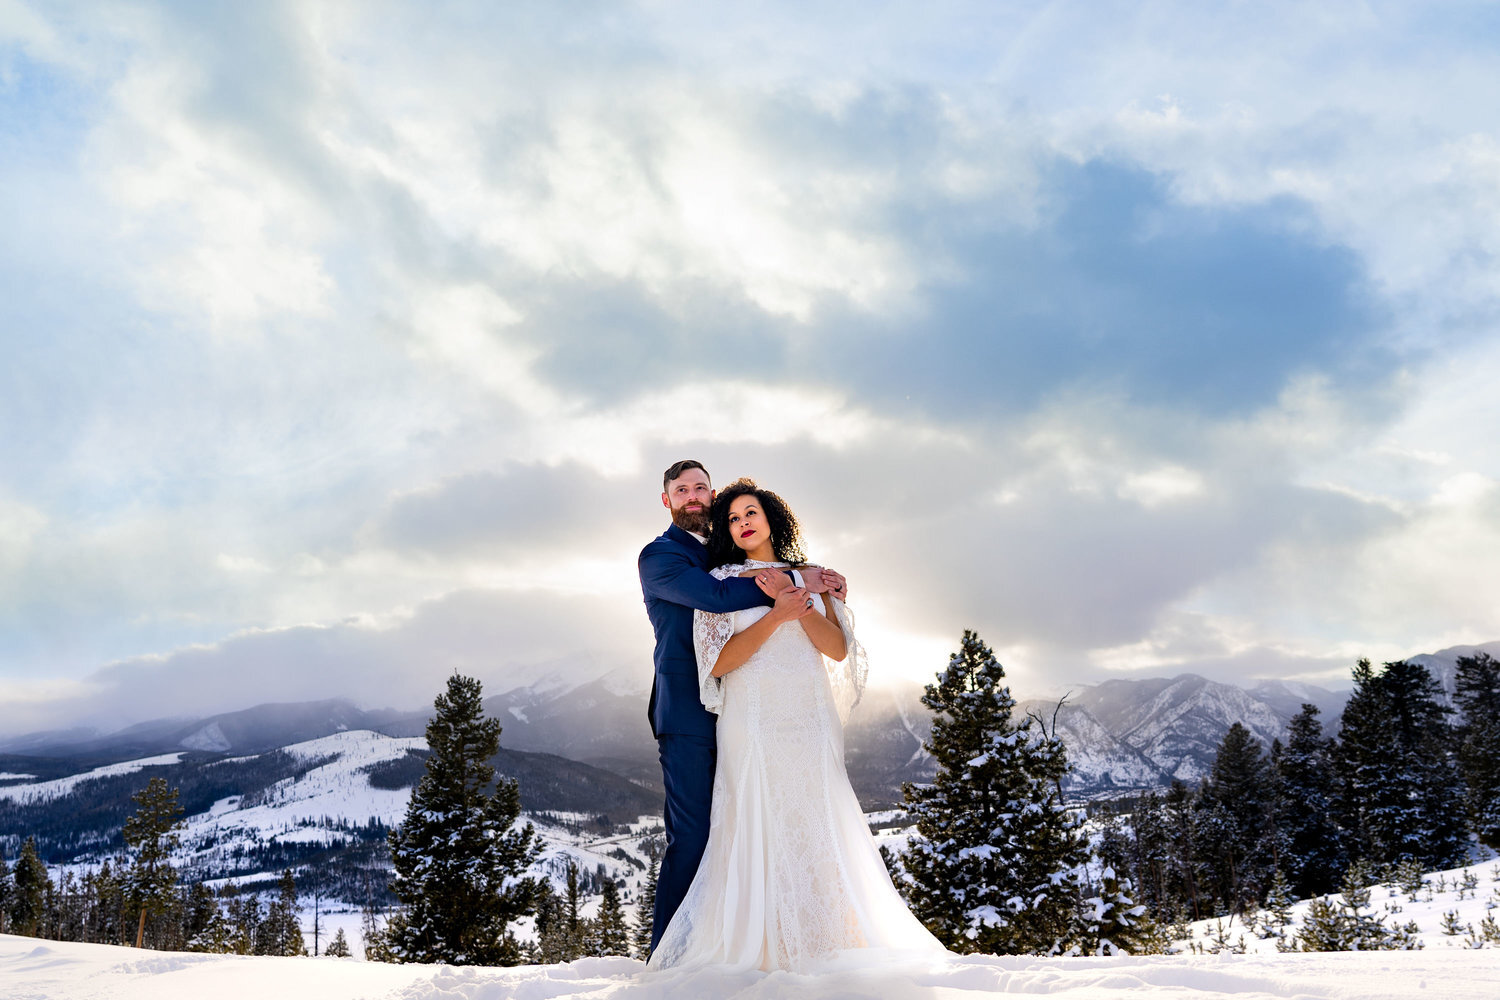 Ashton_Andy_Sapphire_Point_Elopement_Colorado_Wedding_Photographer.jpg